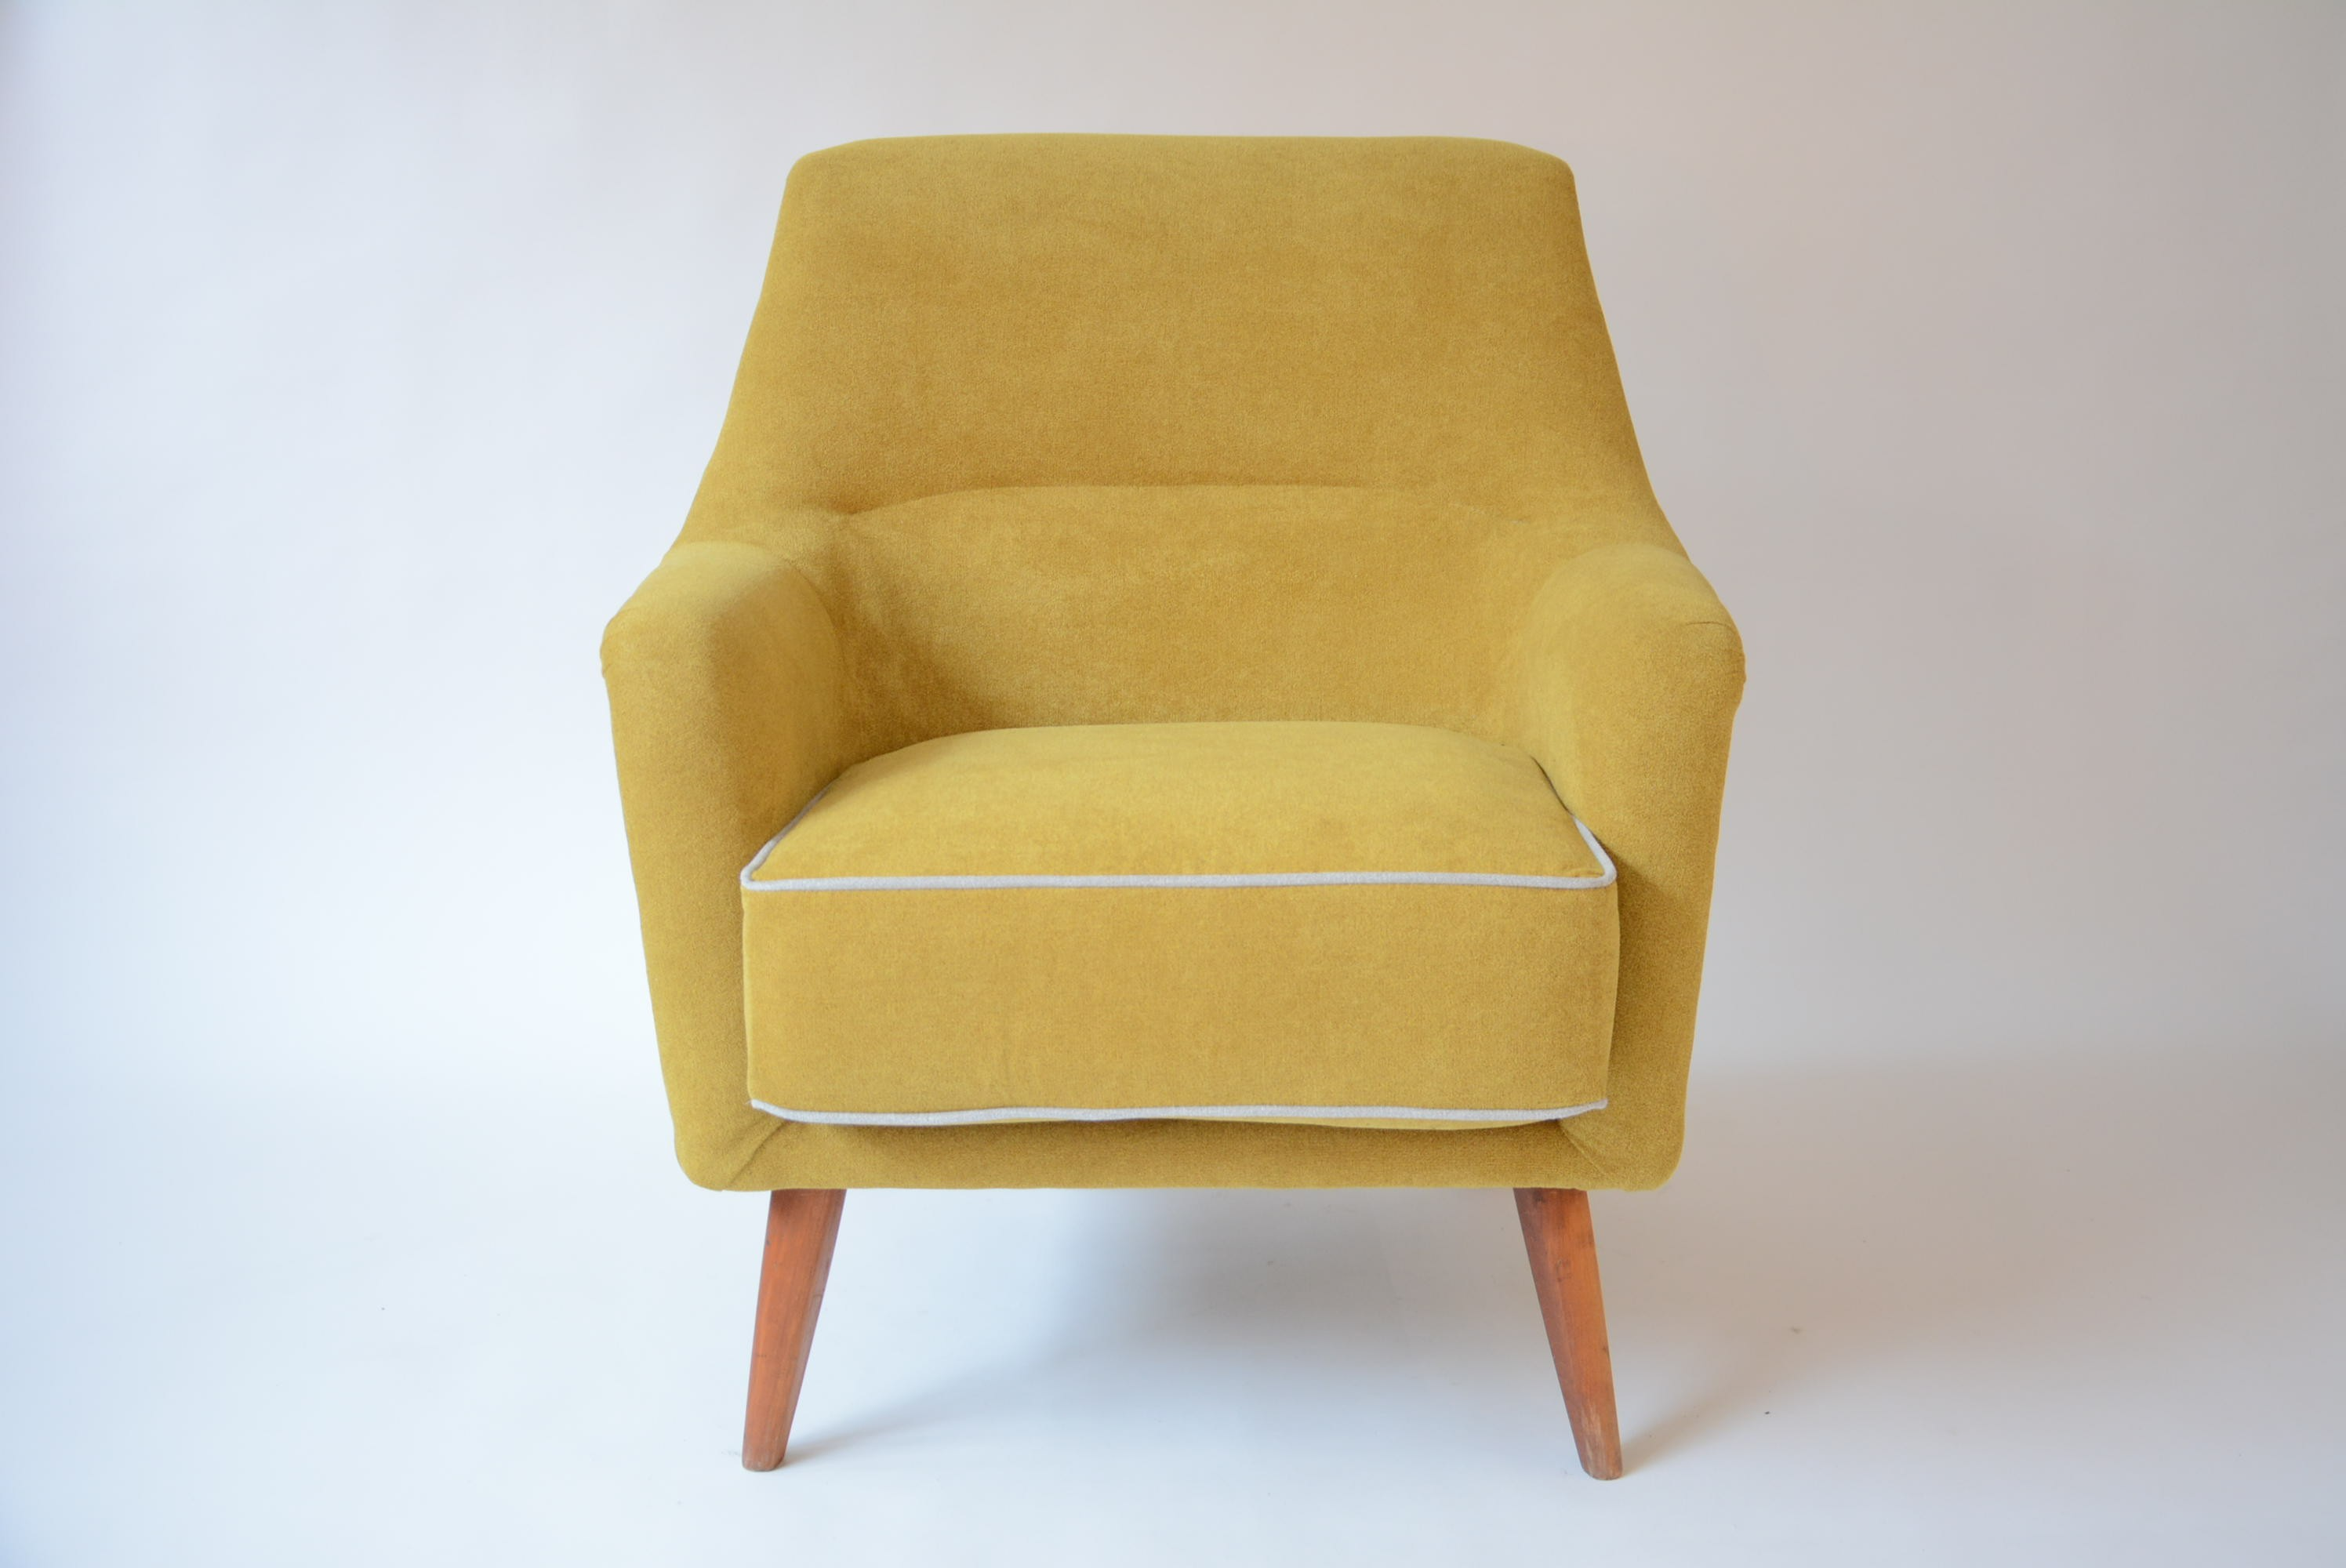 Vintage German Yellow Armchair 1960s Previous Next